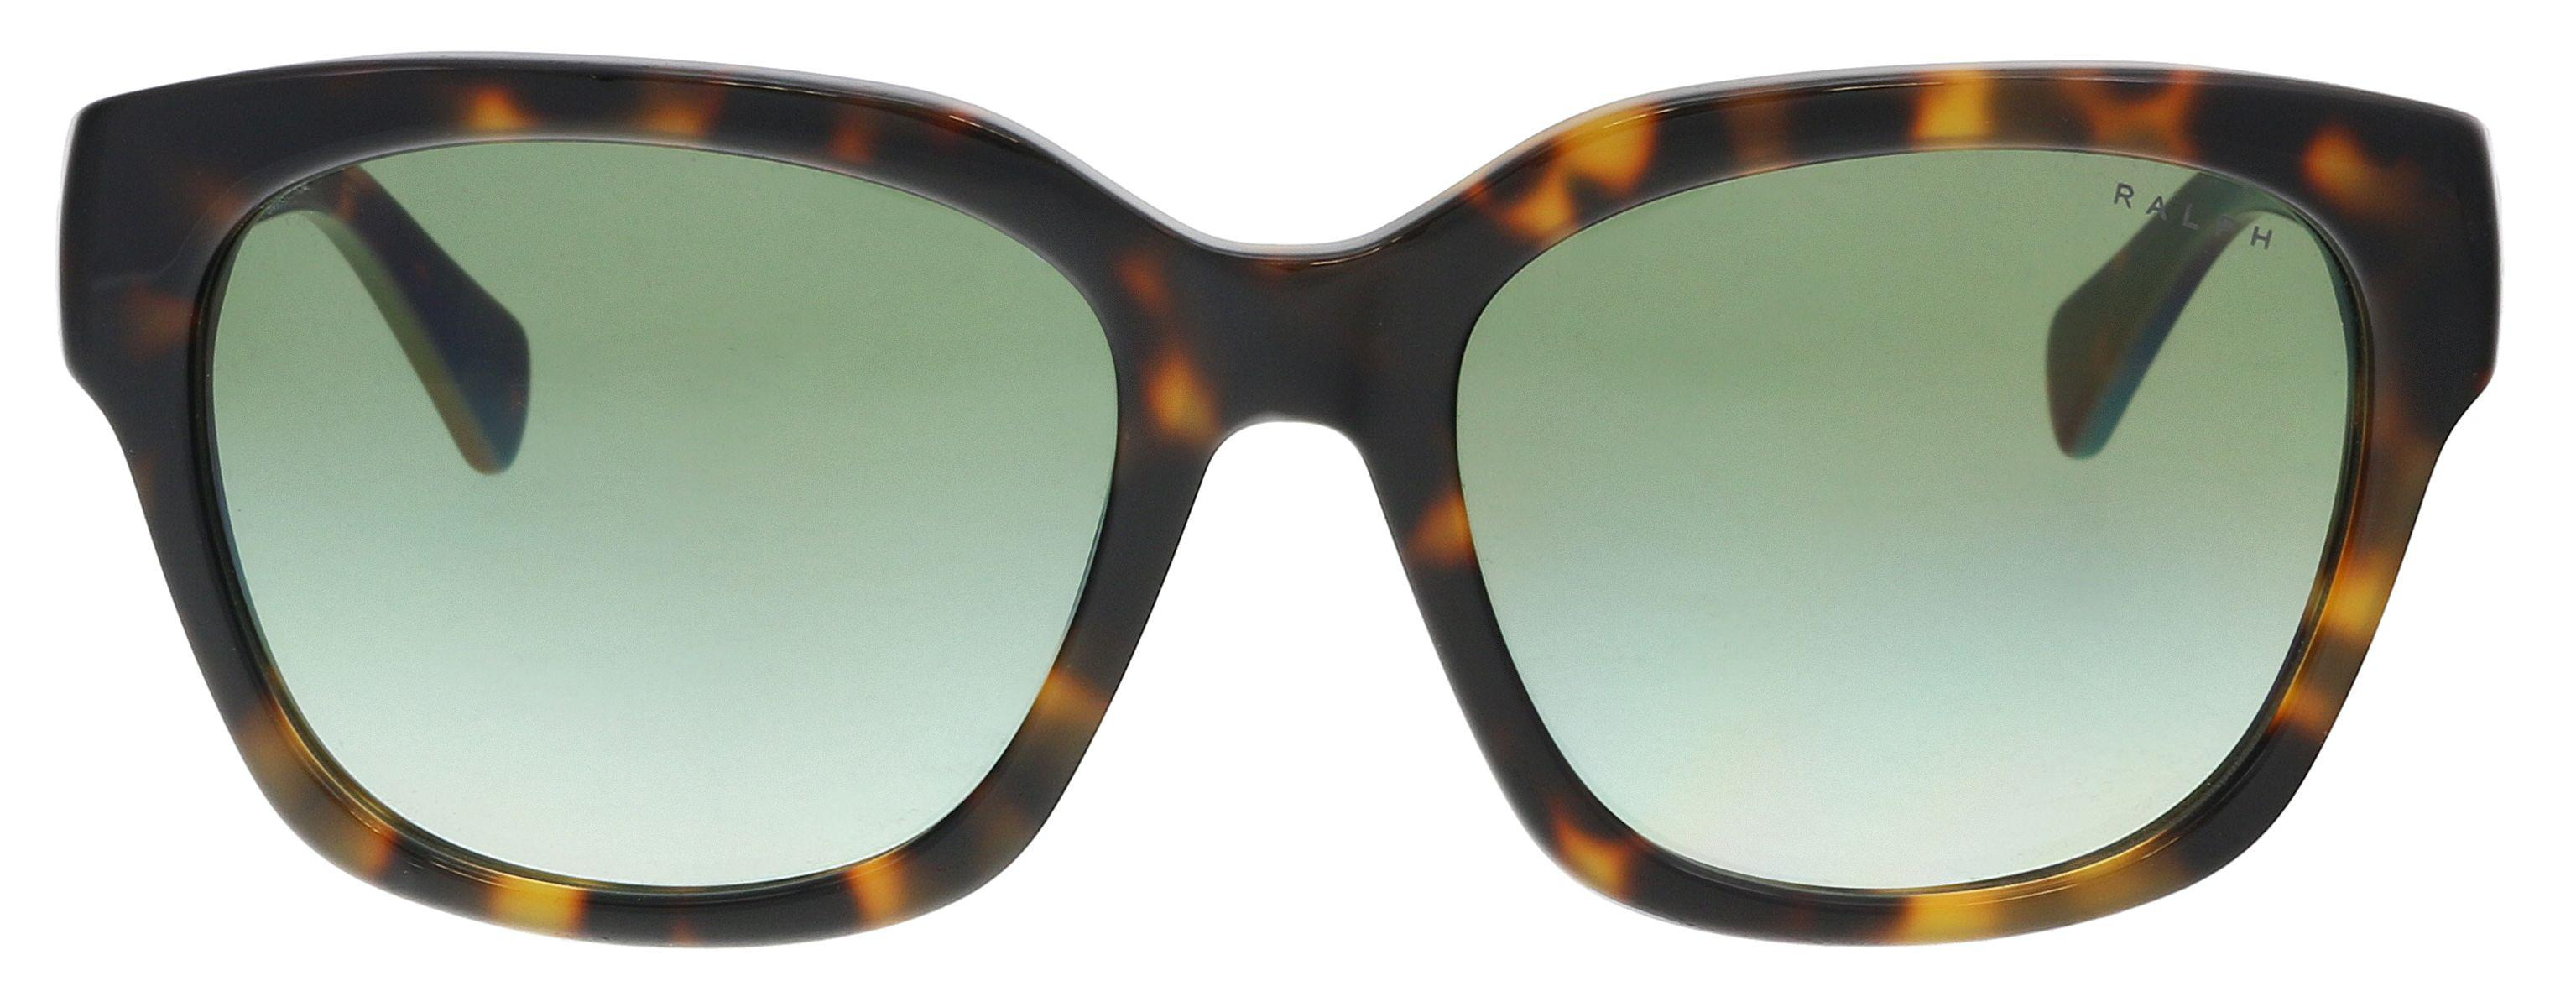 56b2ea08291 Ralph Lauren - Multicolor Ra5221 15858e Dark Tortoise Square Sunglasses -  Lyst. View fullscreen